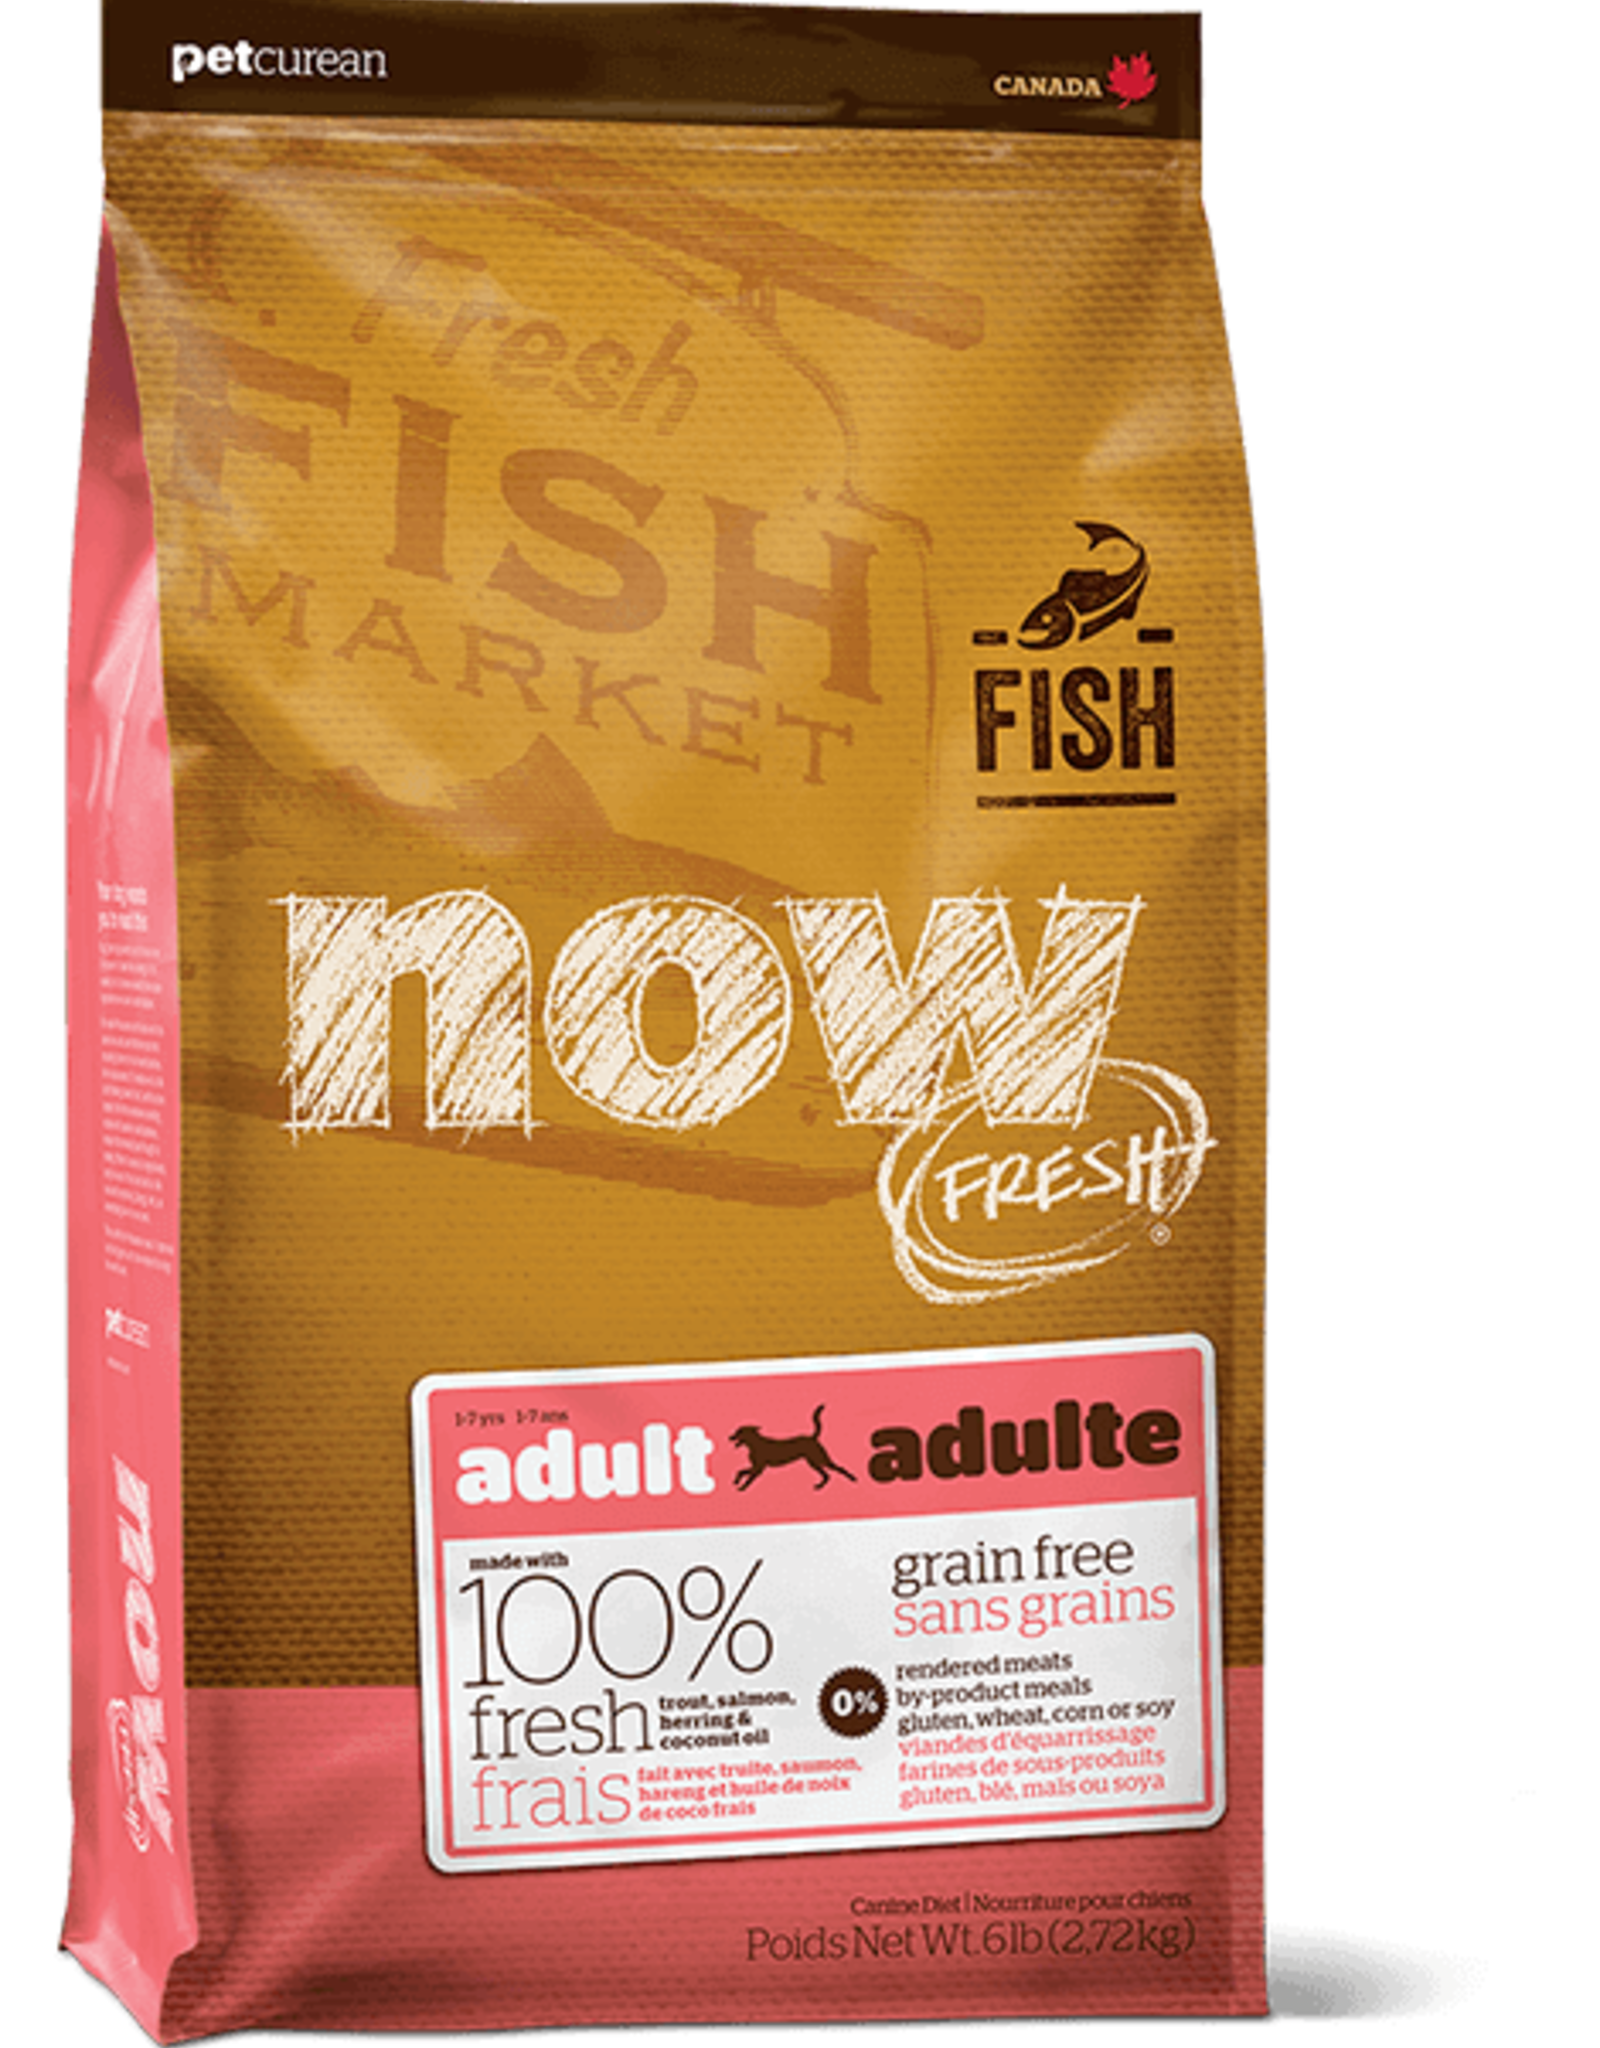 Petcurean Now Fresh Grain Free Dog Adult Trout, Salmon, Herring 22lbs